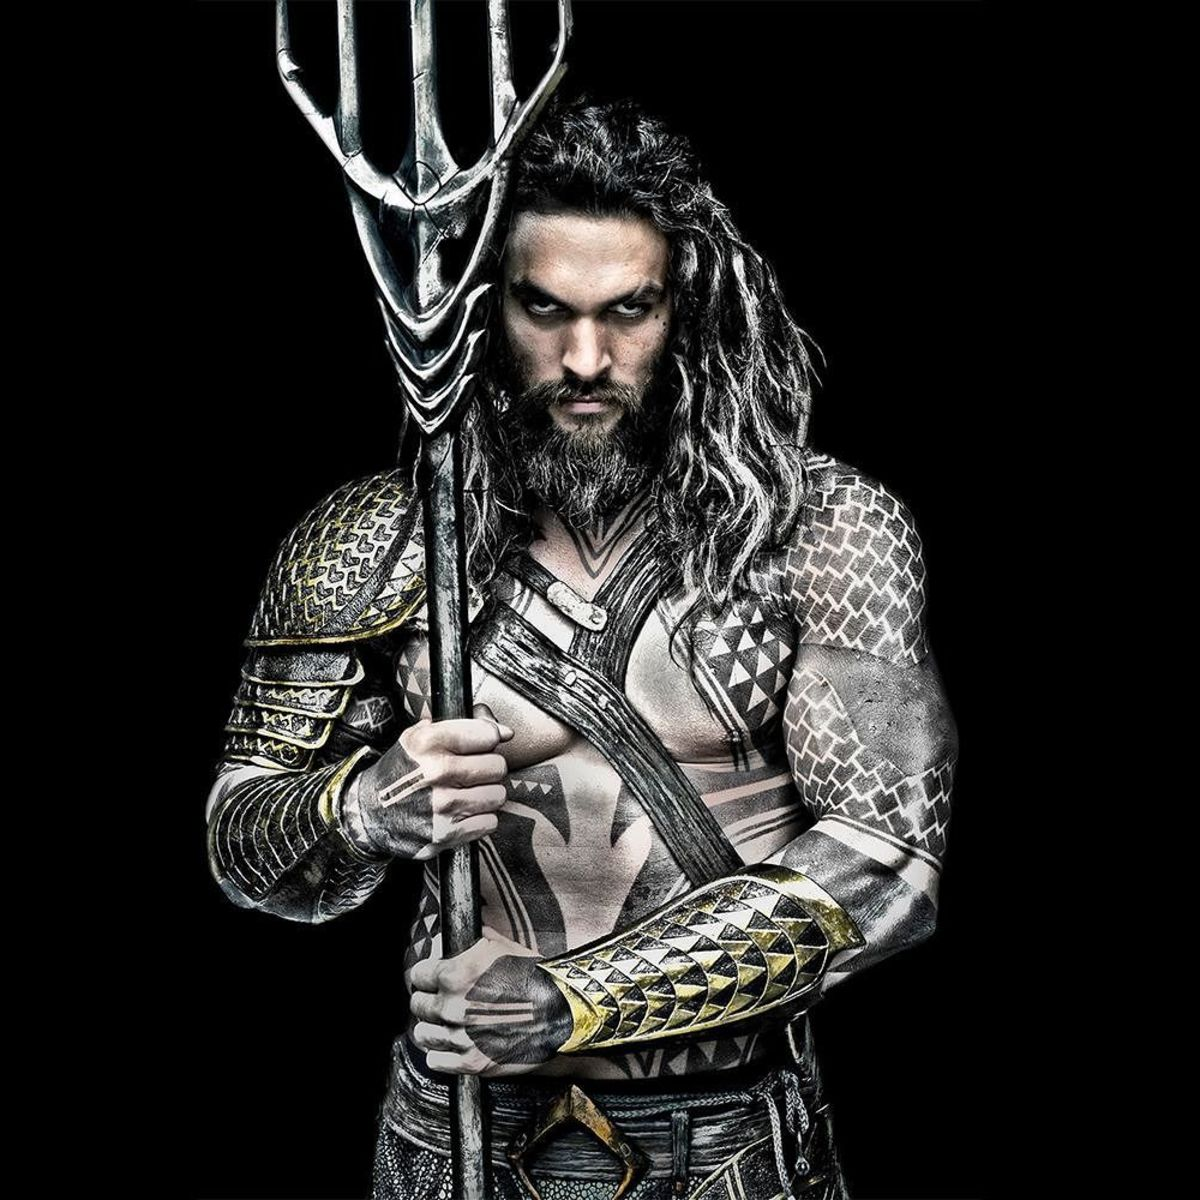 Jason Momoa teases Aquaman trailer ahead of Comic-Con's unveiling